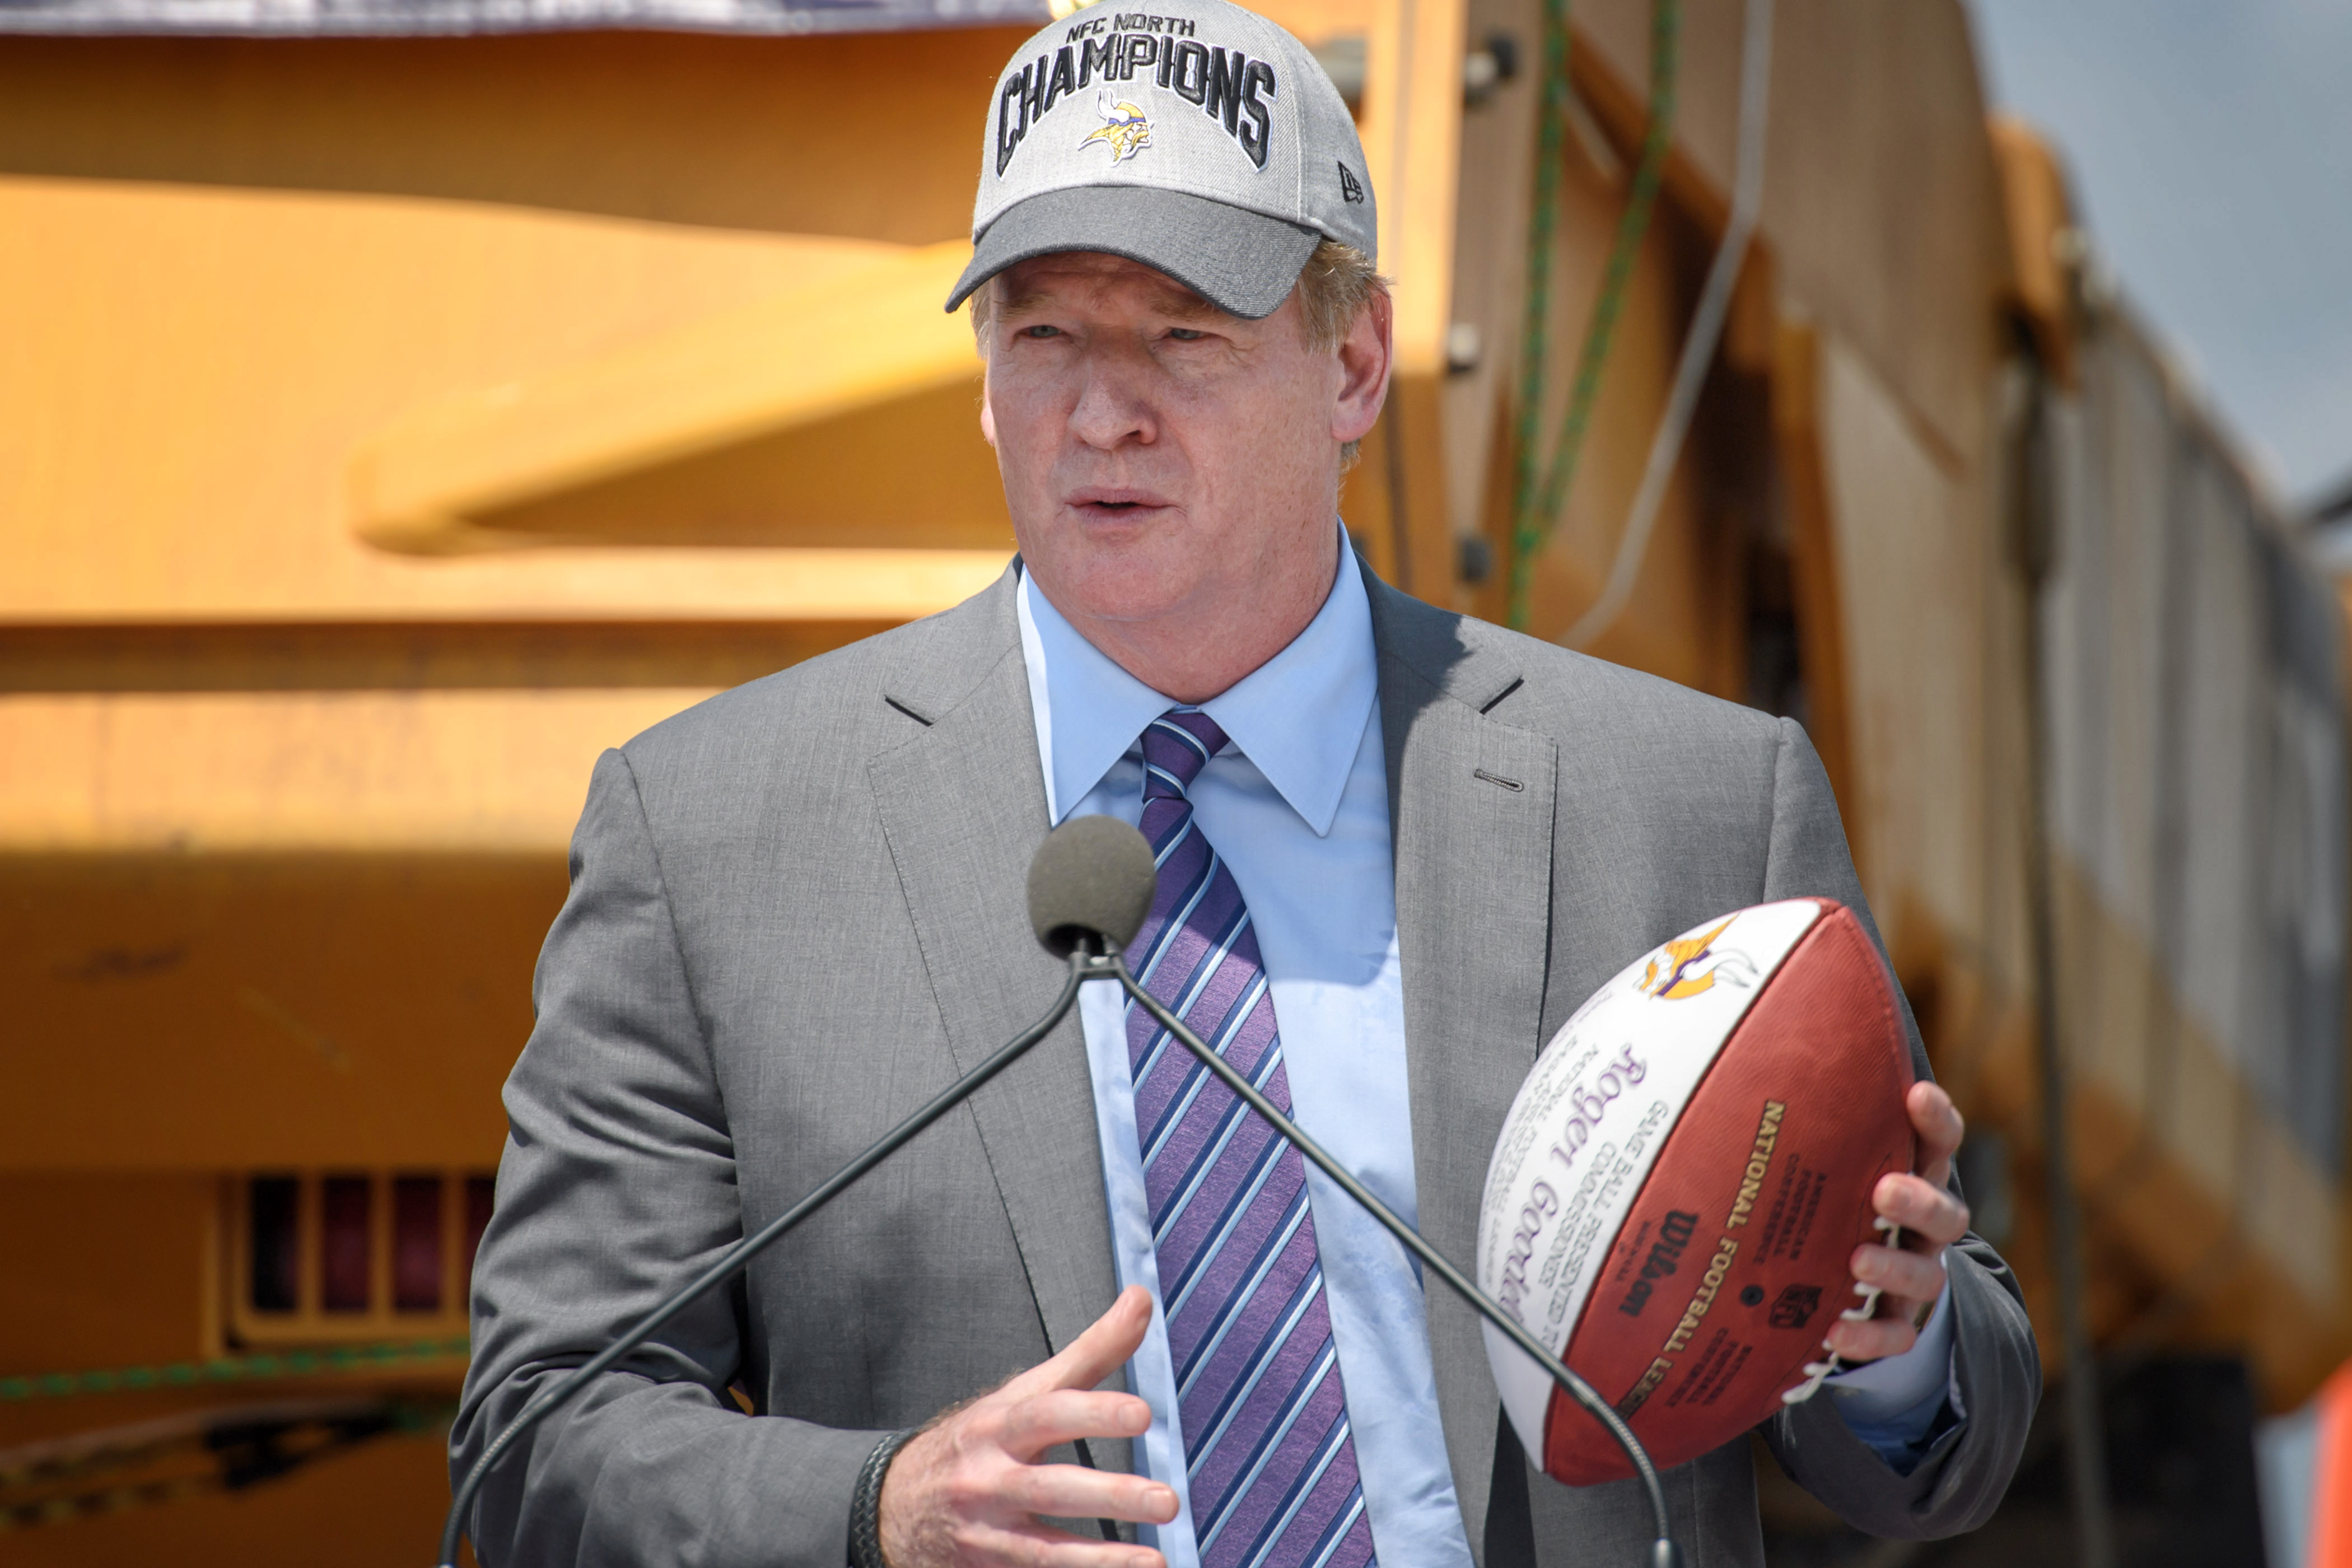 NFL Commissioner Roger Goodell holds a commemorative football at a groundbreaking ceremony for the Minnesota Vikings' new NFL football training facility and team offices they will move into in 2018, in Eagan, Minn., Tuesday, Aug. 2, 2016. (Glen Stubbe/Sta